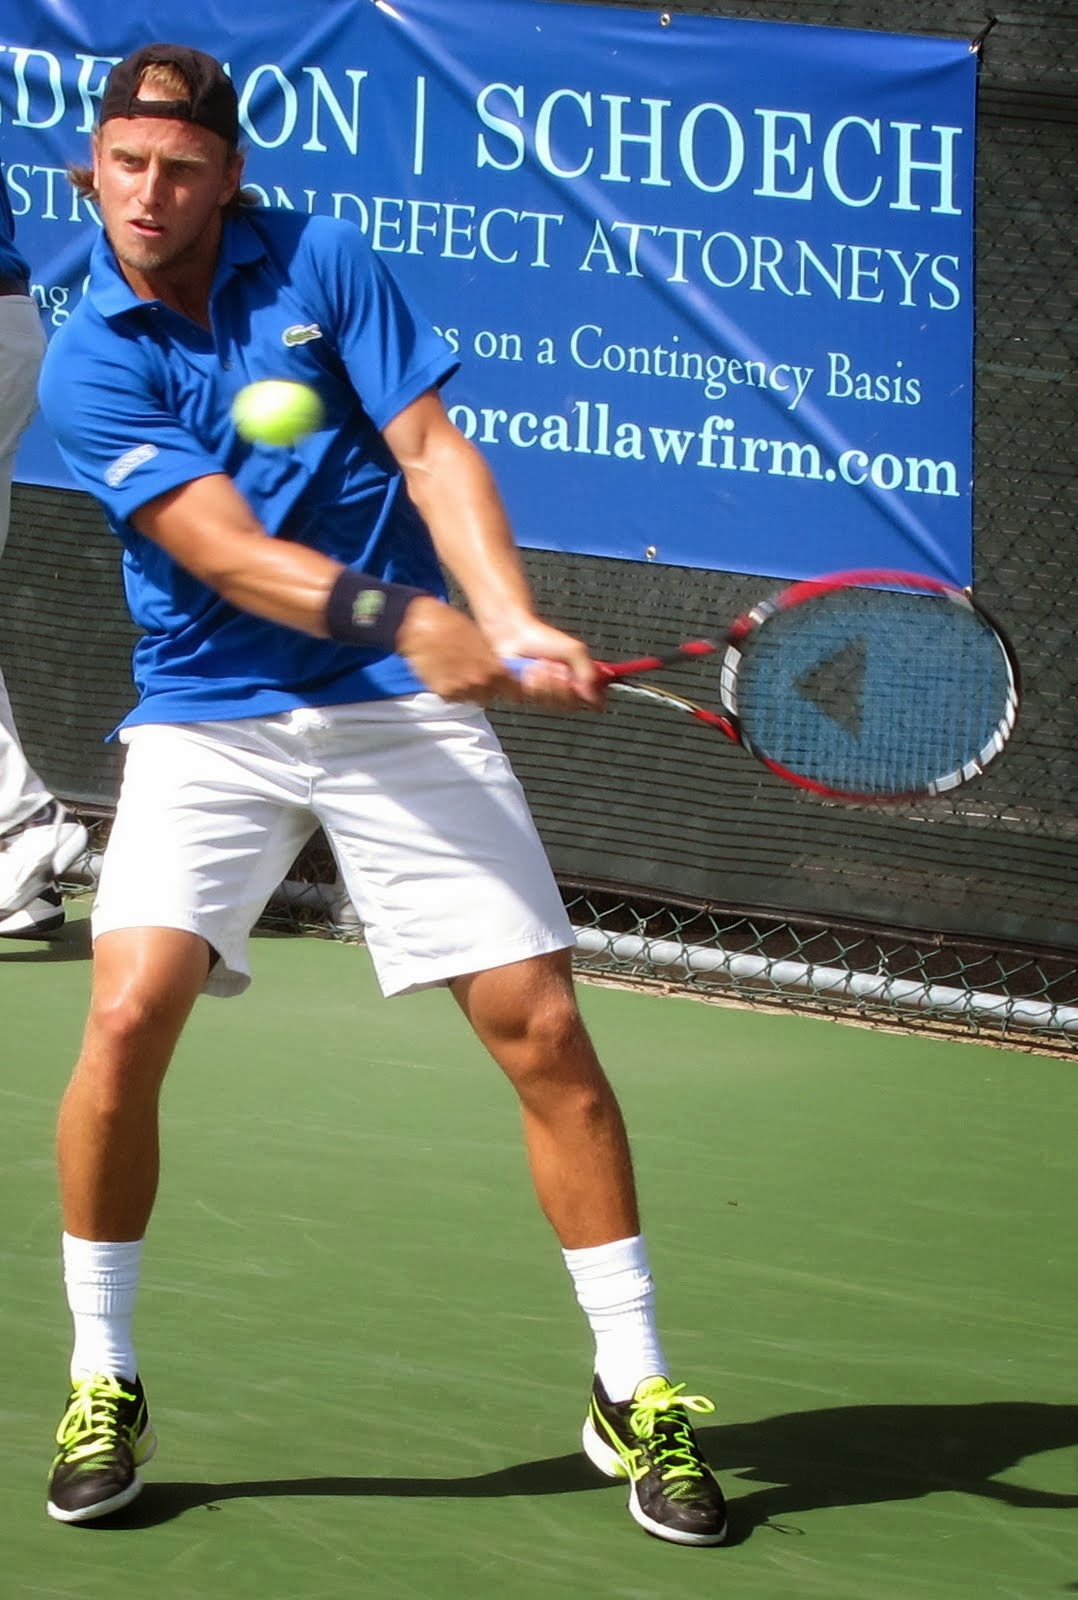 Altamirano to face seed in Sacramento Challenger